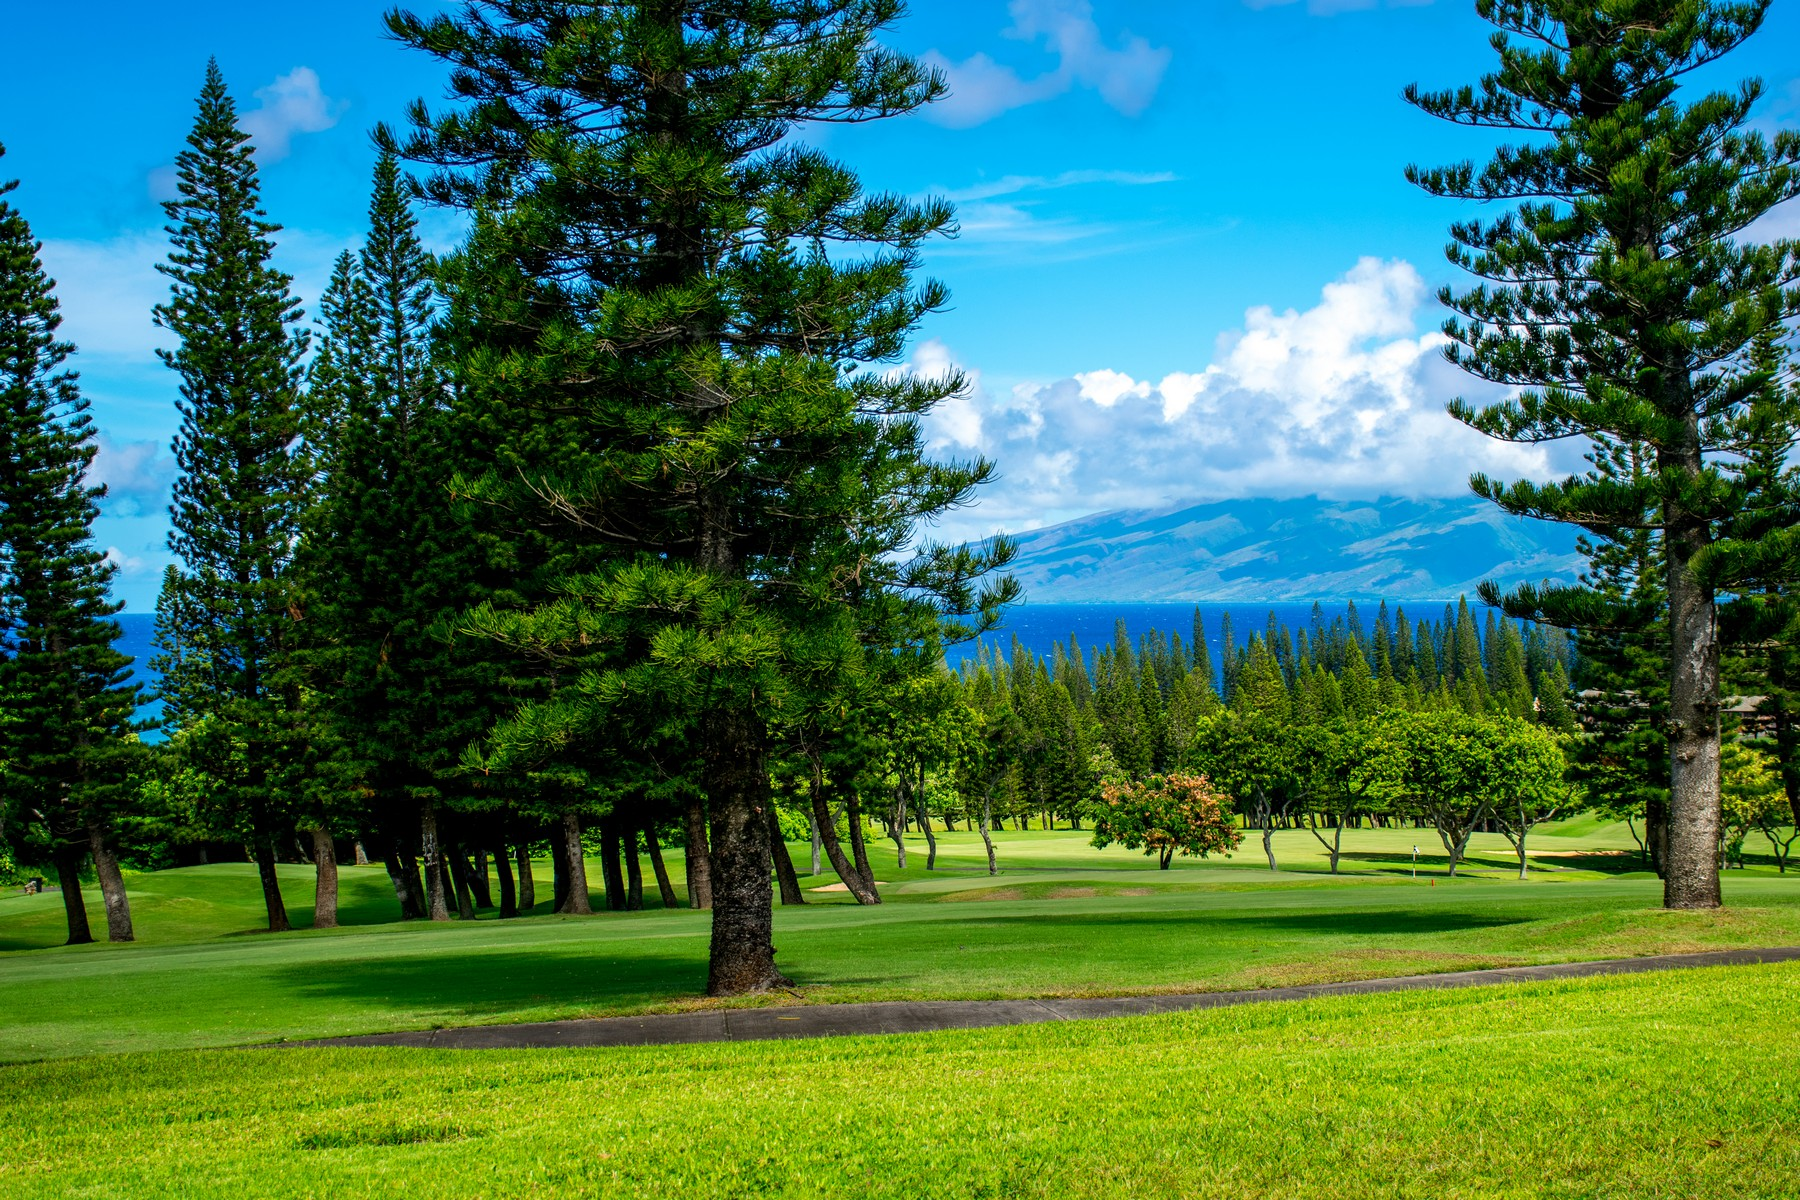 共管式独立产权公寓 为 销售 在 Stunning Villa Overlooking the Kapalua Bay Course 500 Kapalua Drive, Kapalua Golf Villas 27P1, 2 卡帕鲁亚, 夏威夷, 96761 美国